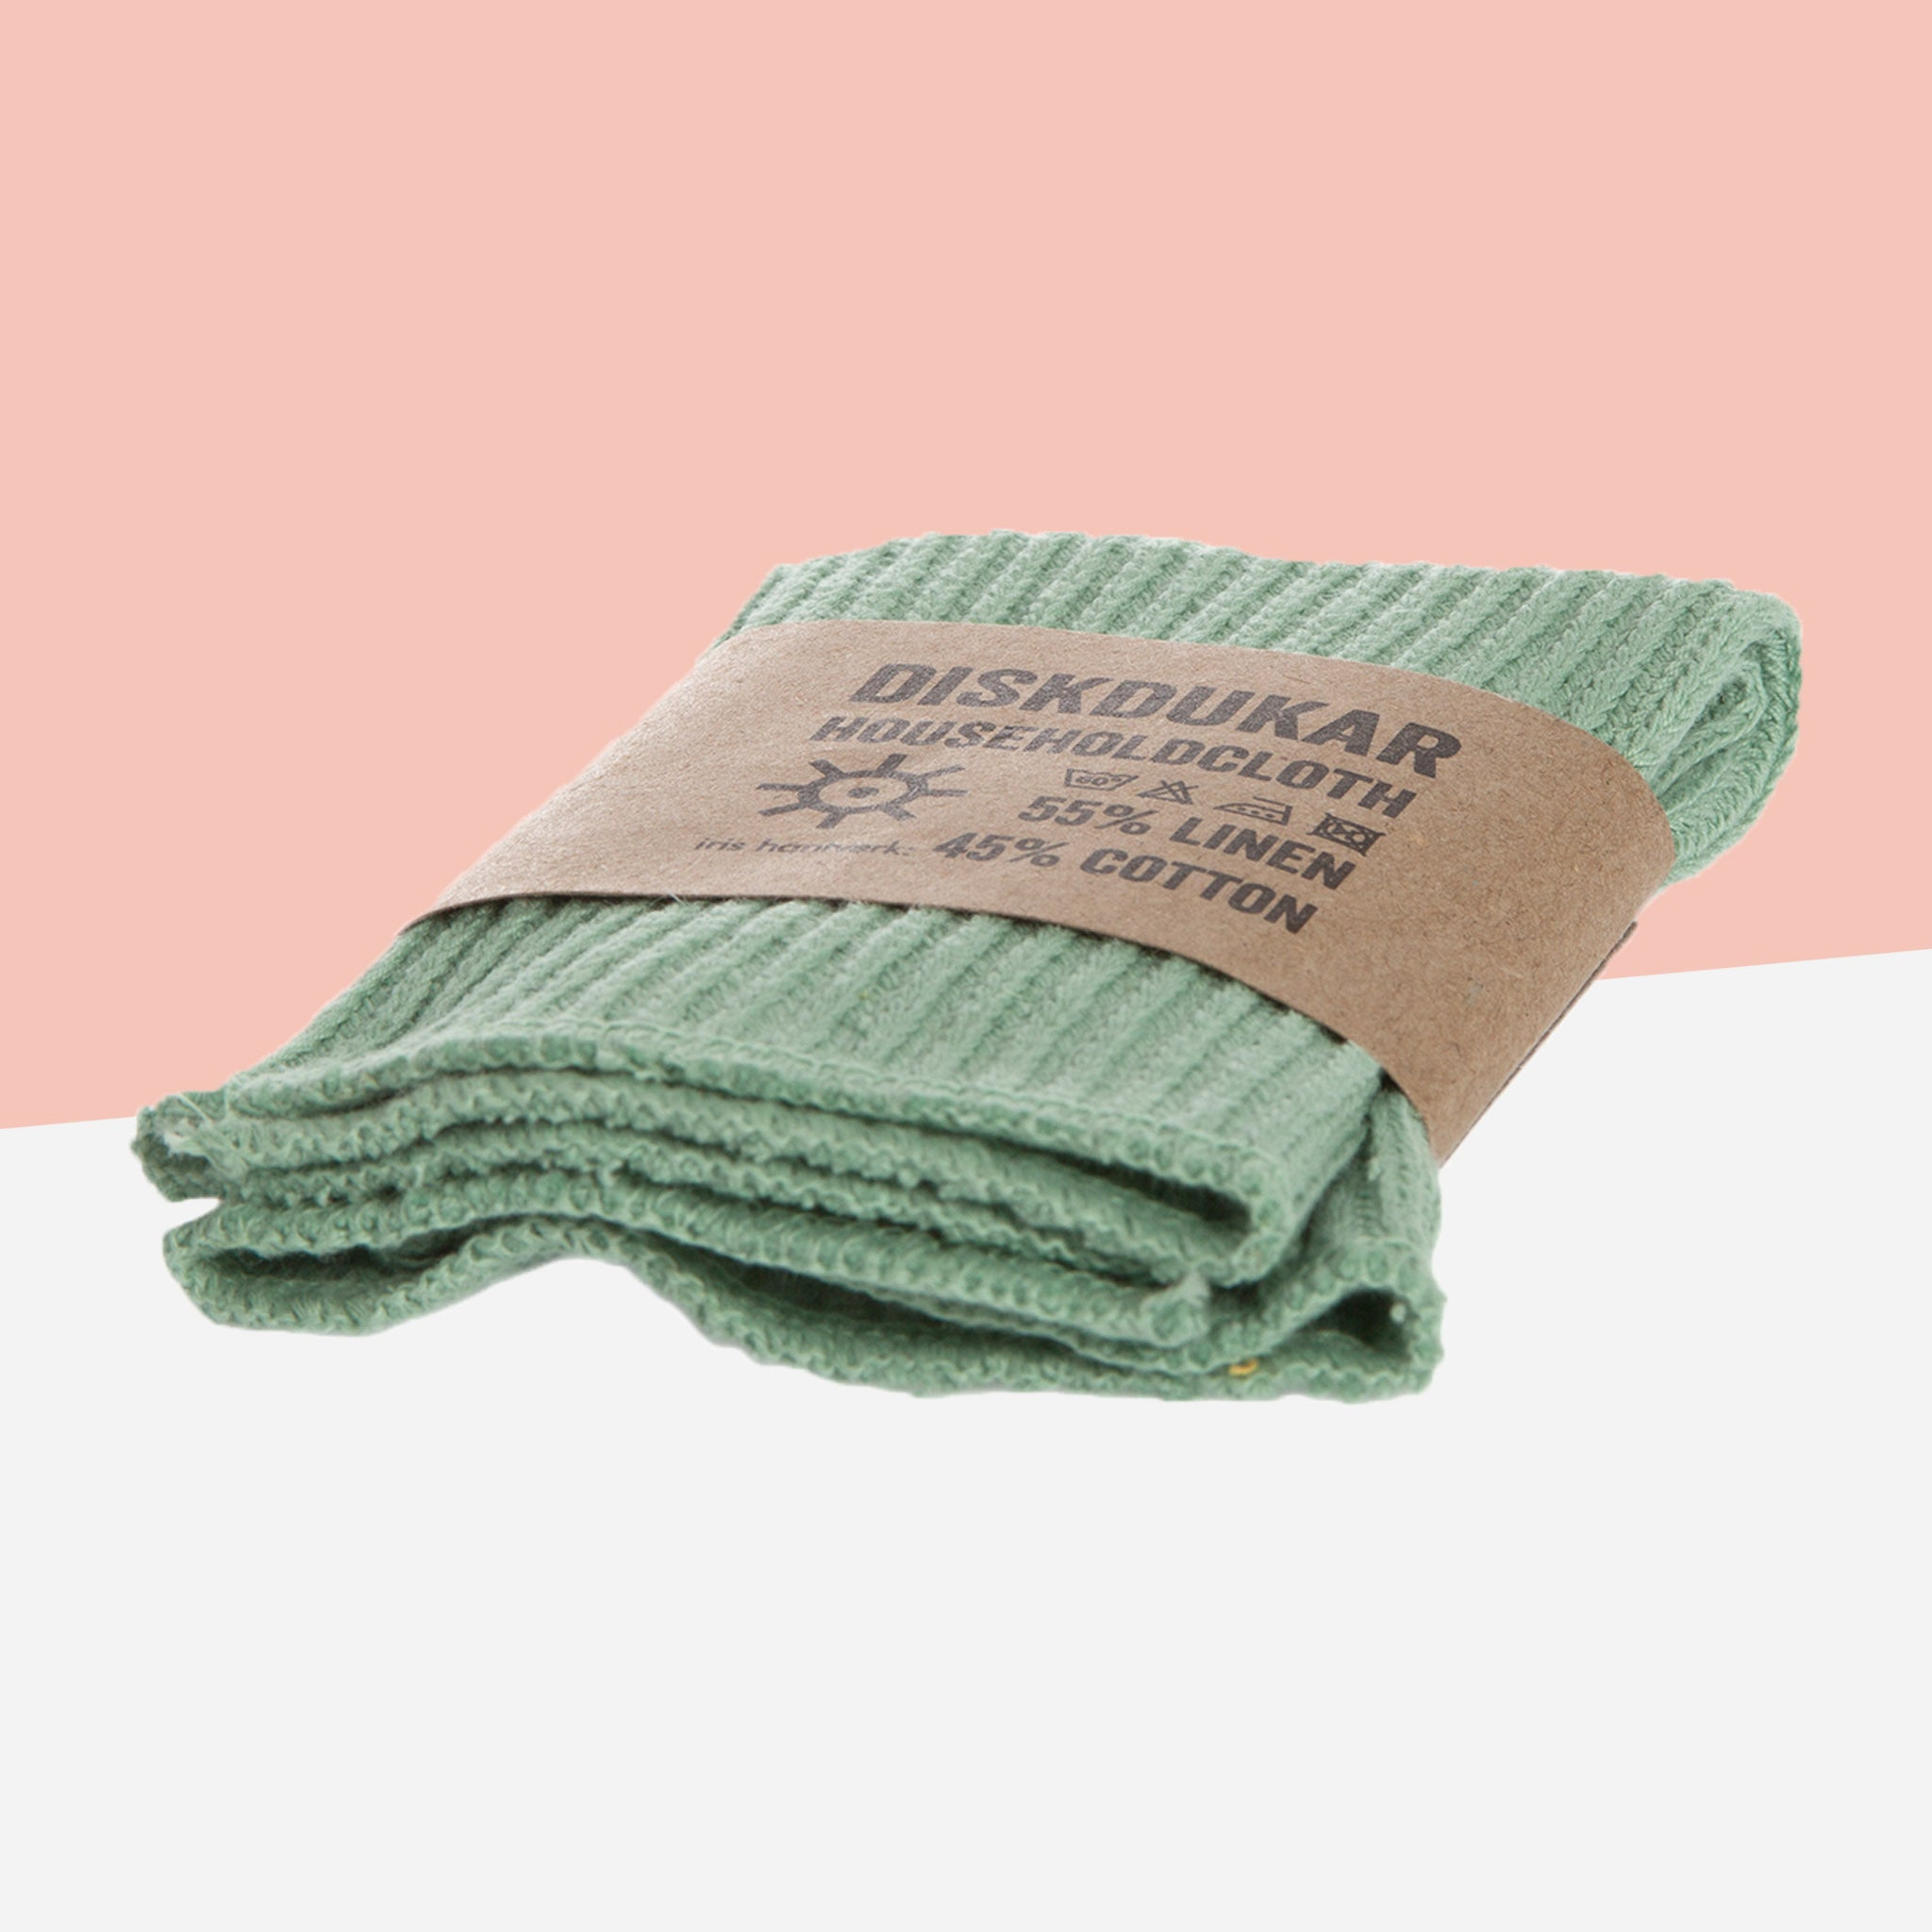 Iris Hantverk Biodegradable Cloth - White Space Home